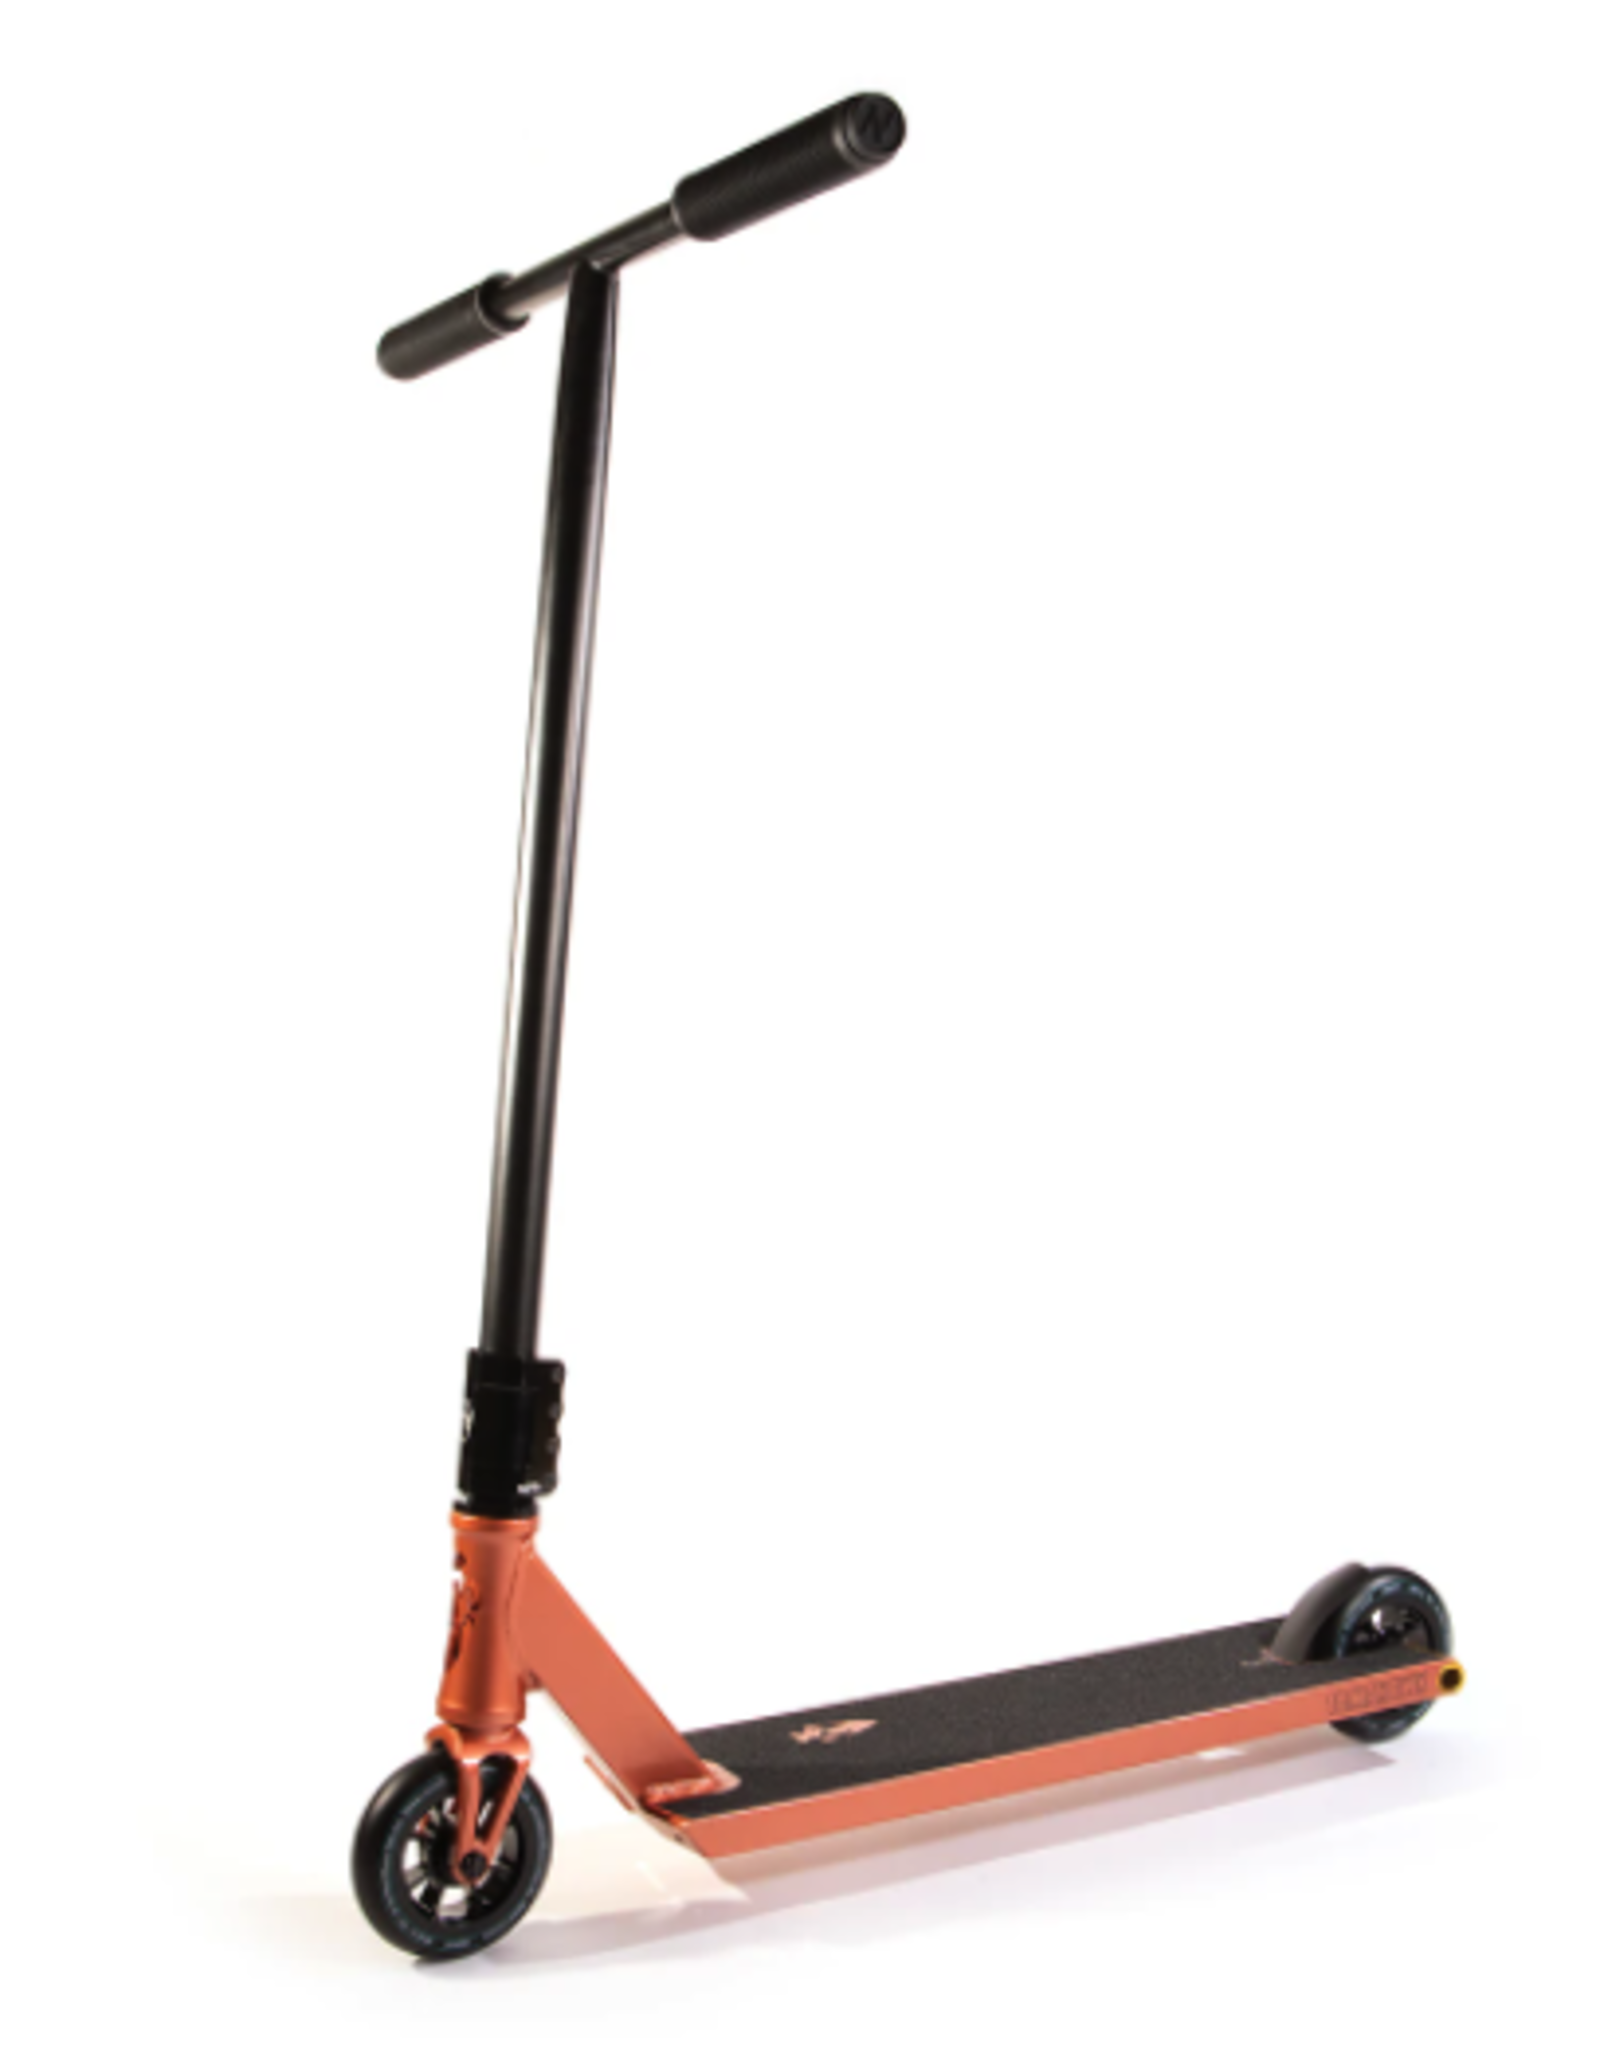 North Scooters North Scooters Tomahawk Complete